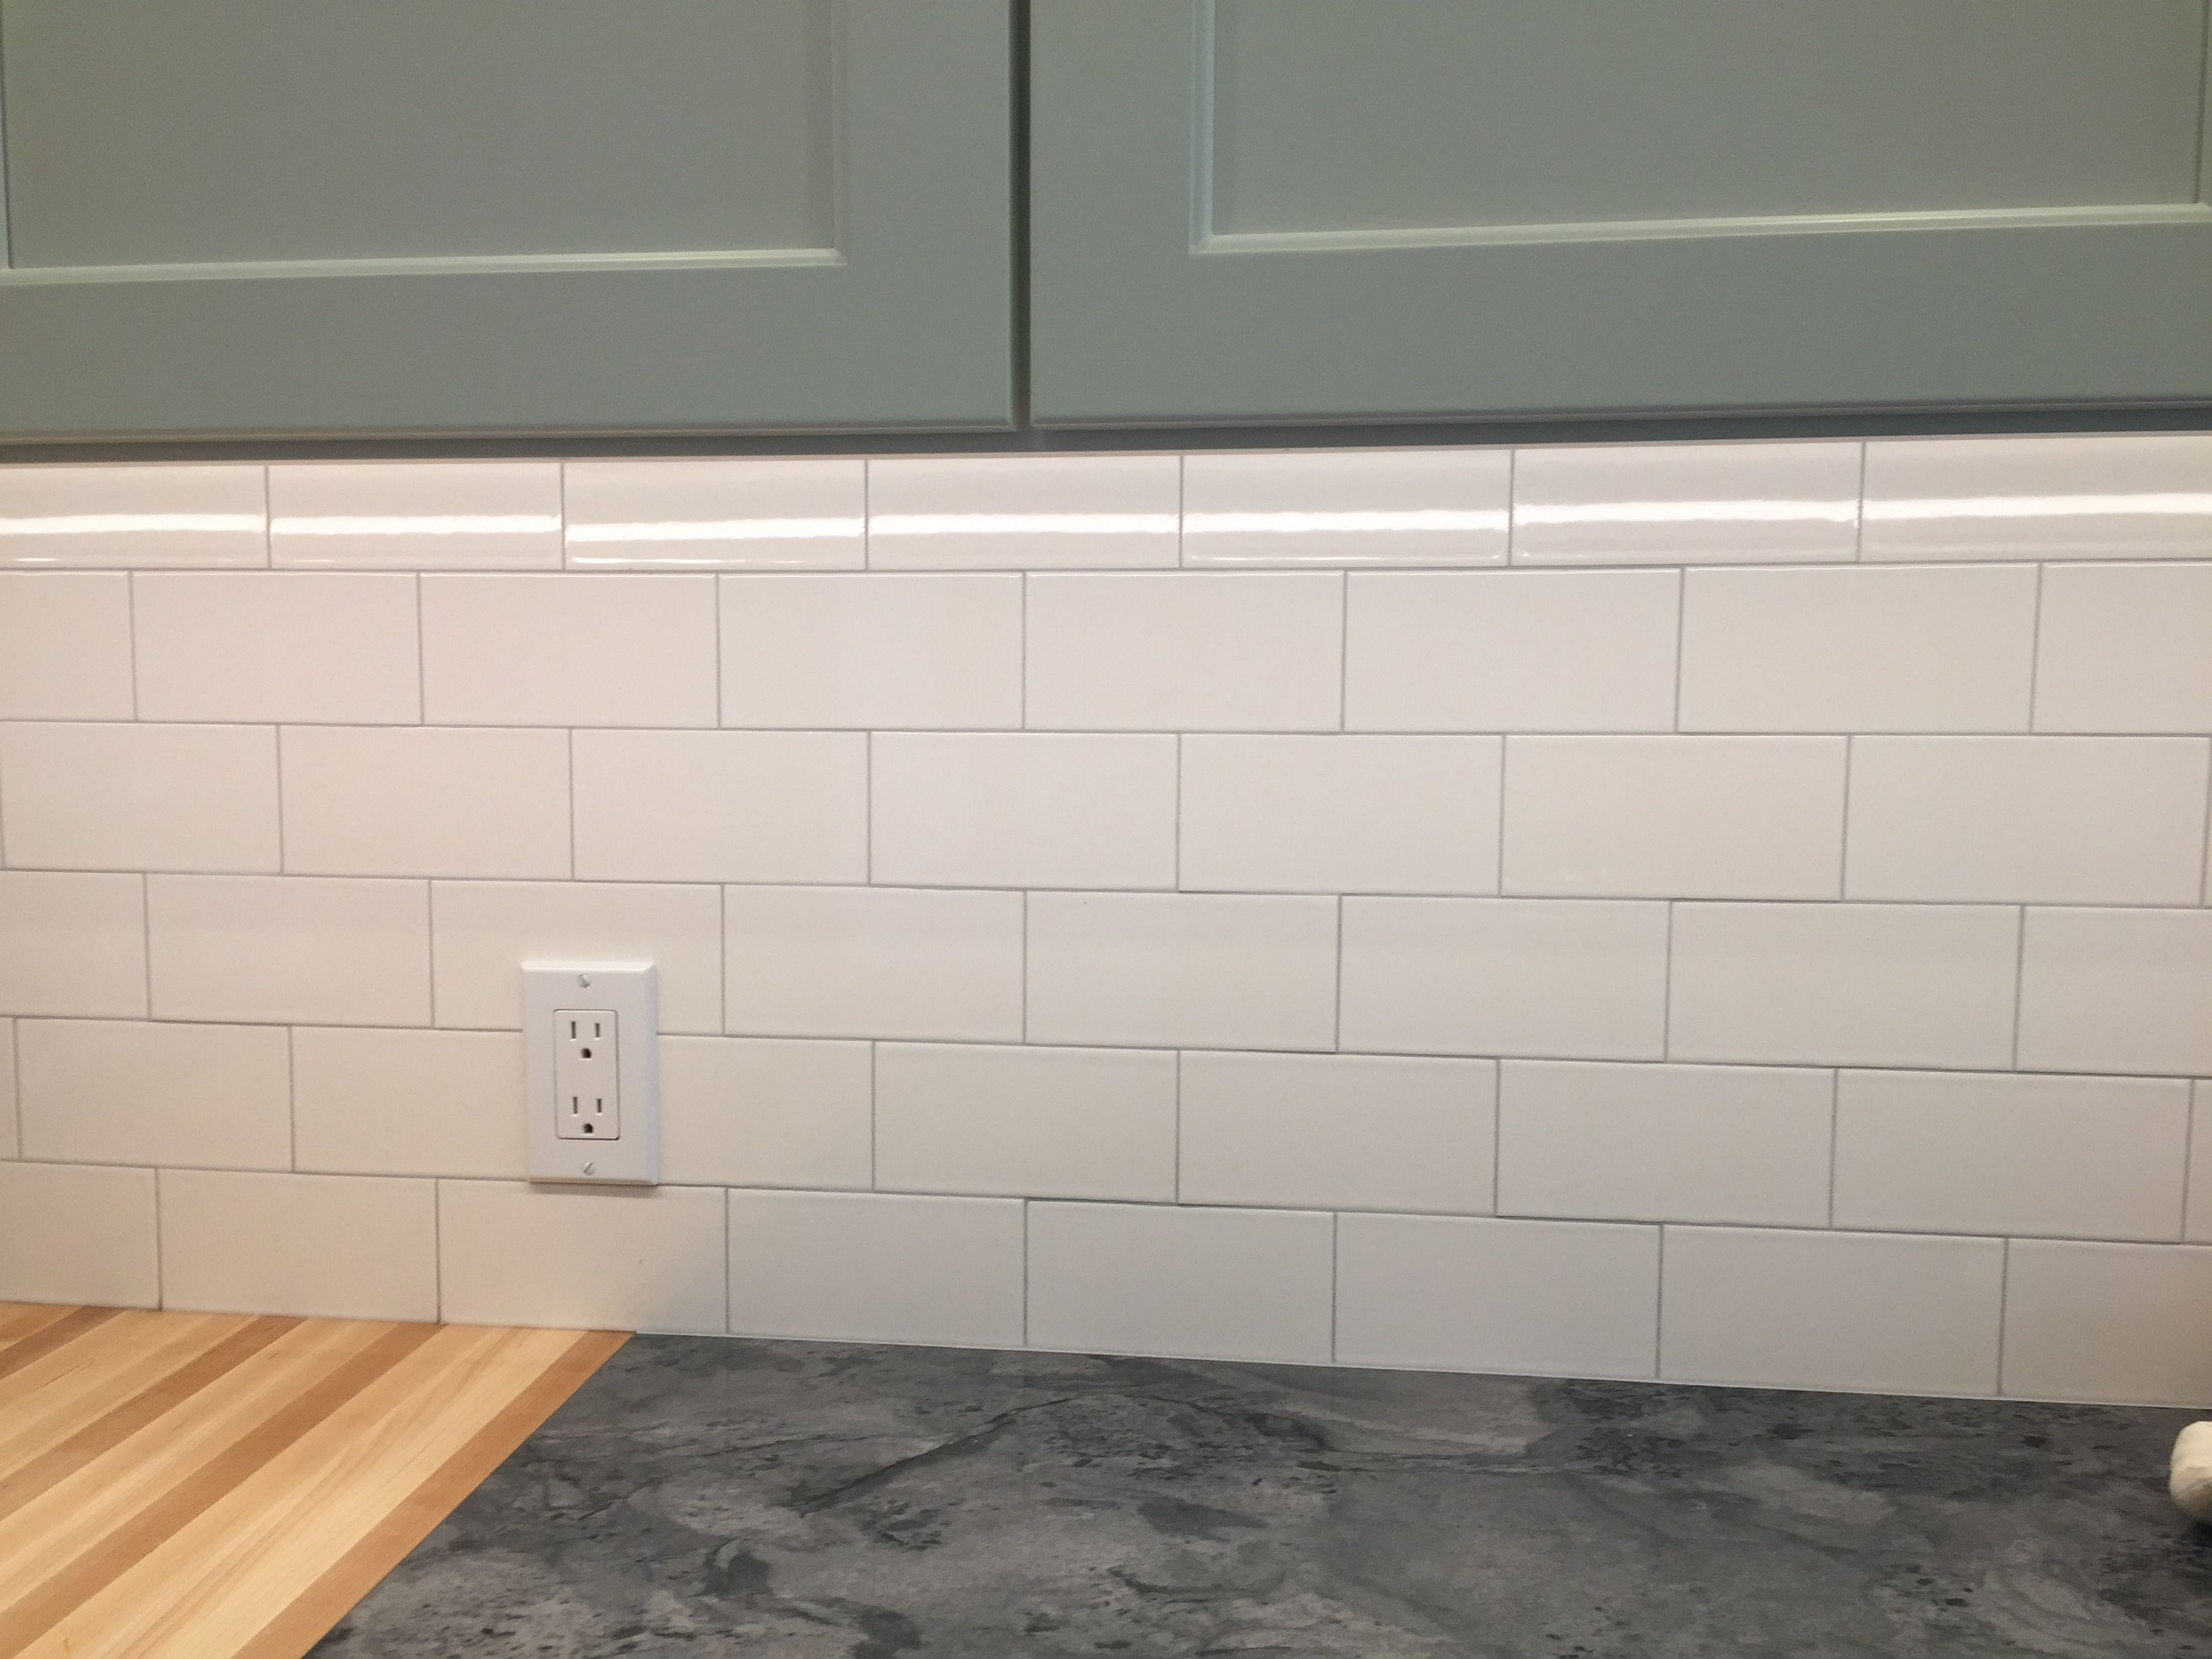 Heritage Tile 3x6 Subway In Glass White With Custom Rolling Fog Grout Green Kitchen Master Bathroom Grout